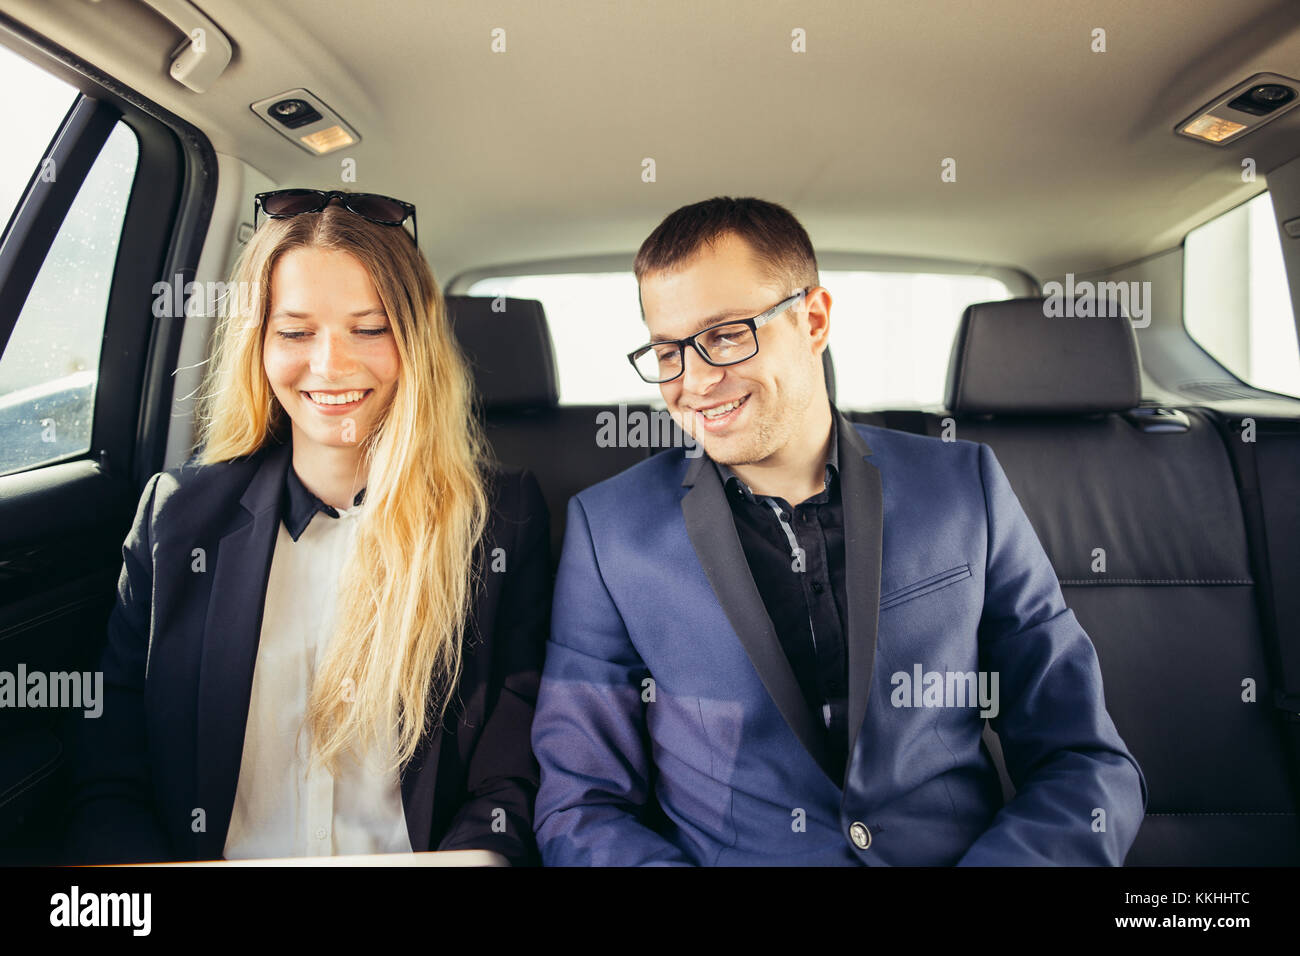 Business People Meeting Working Car Inside - Stock Image